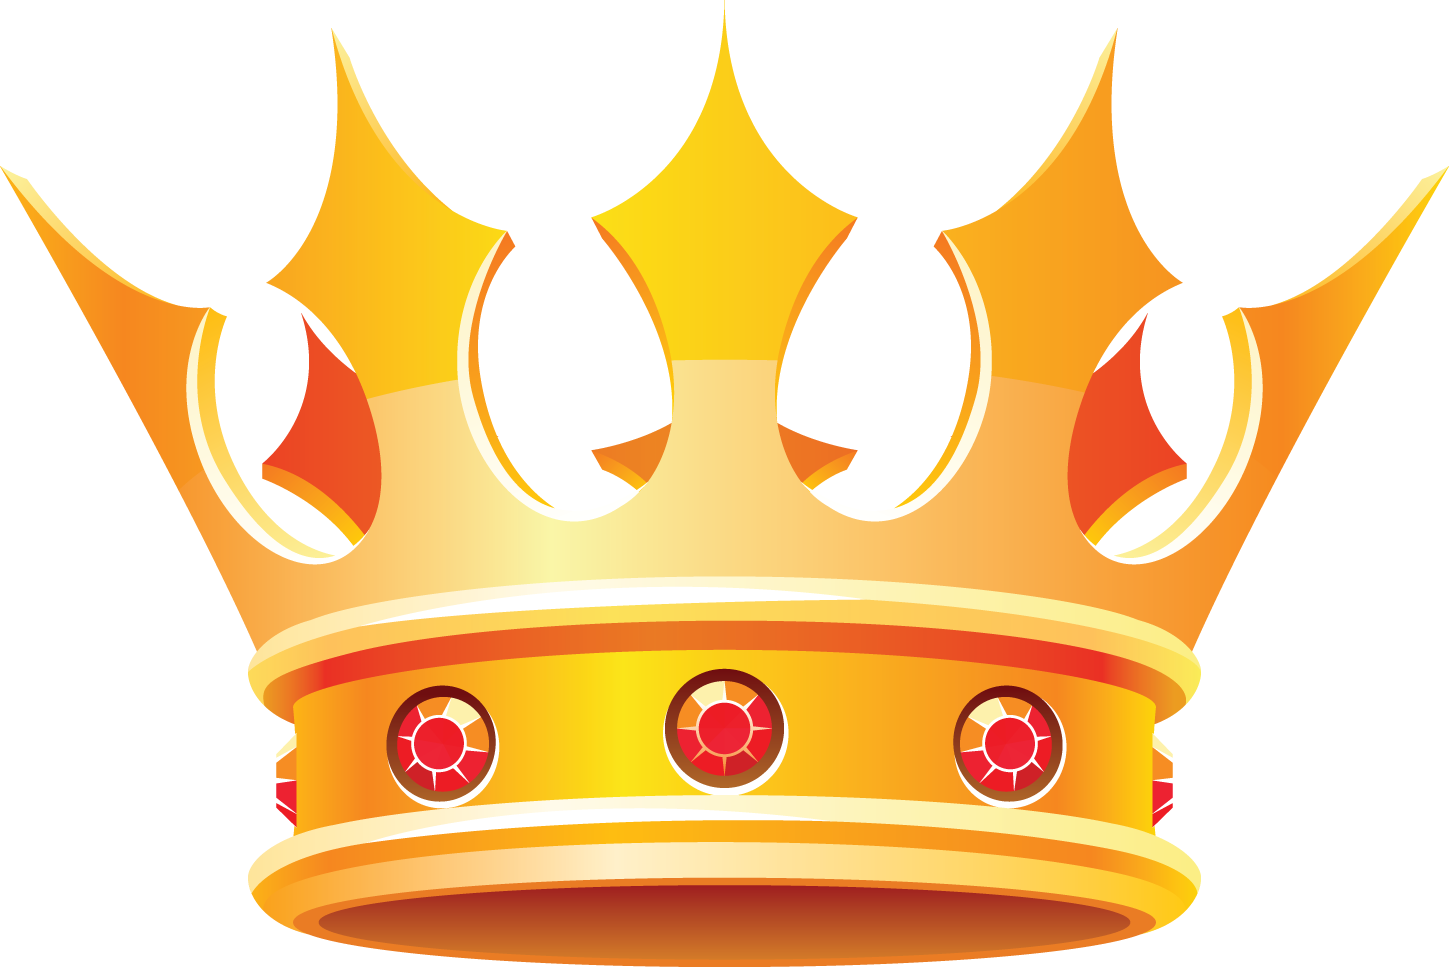 Queen clipart at getdrawings. Crown clip queen's transparent library